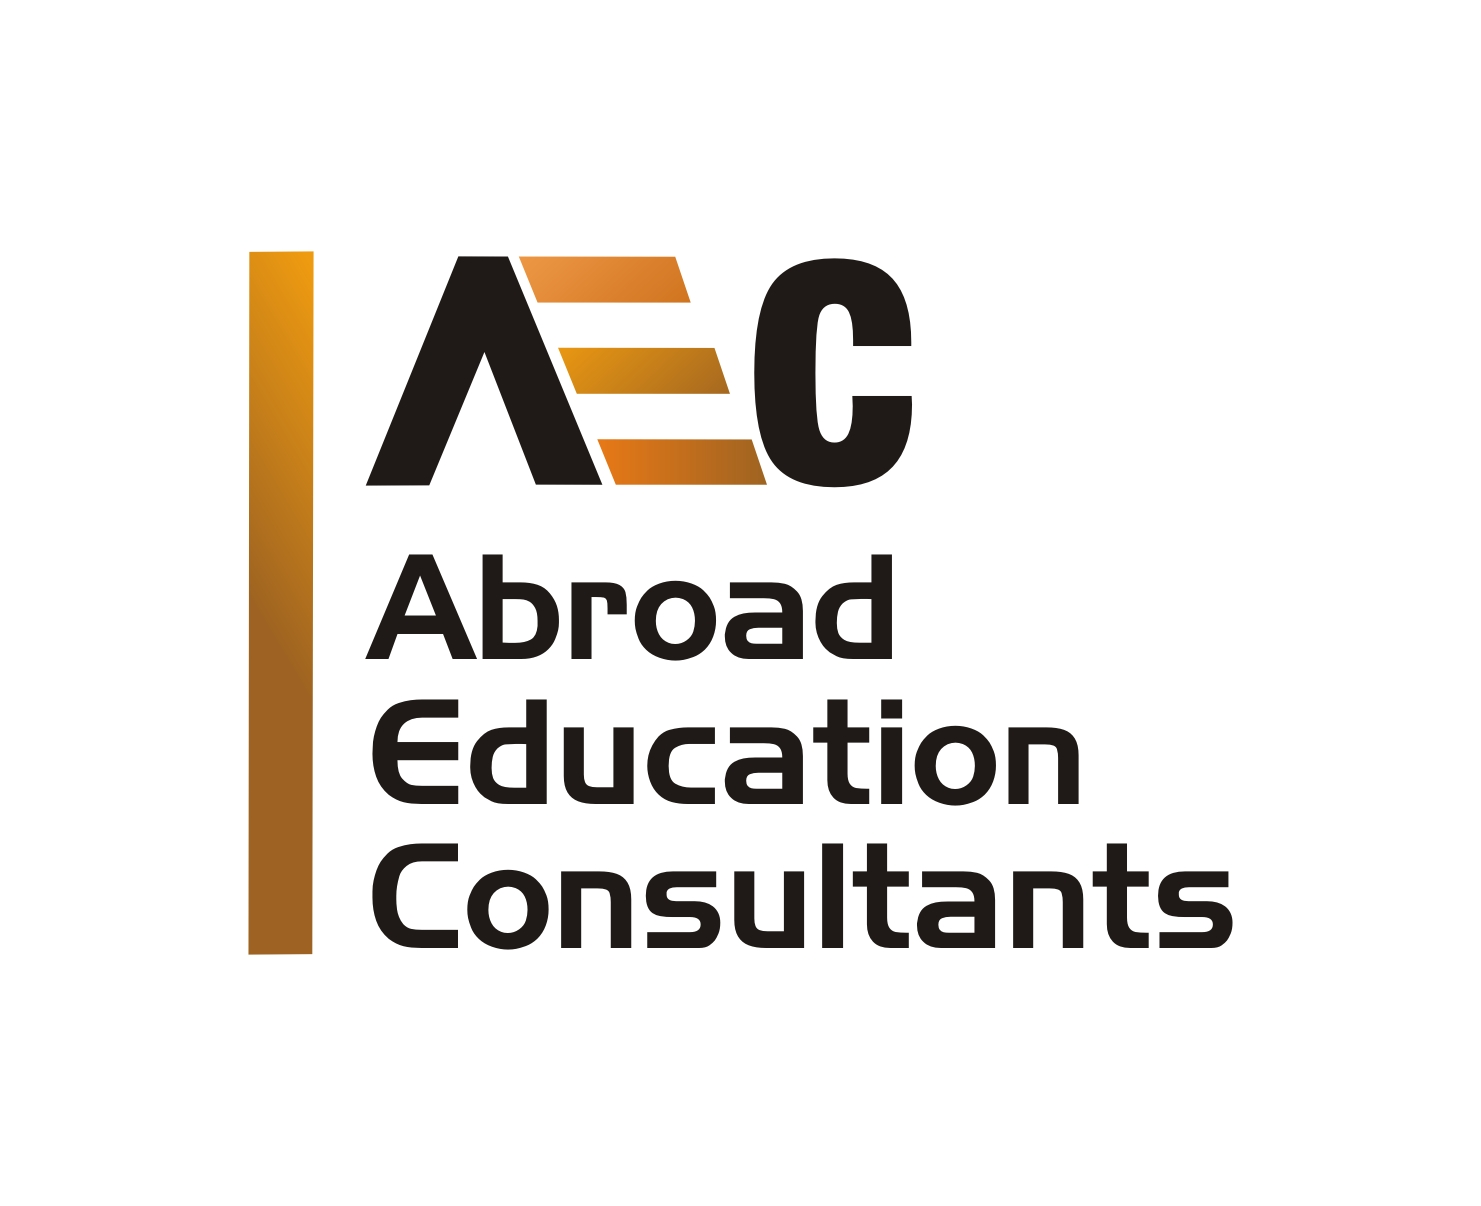 AEC - Abroad Education Consultants Job Openings